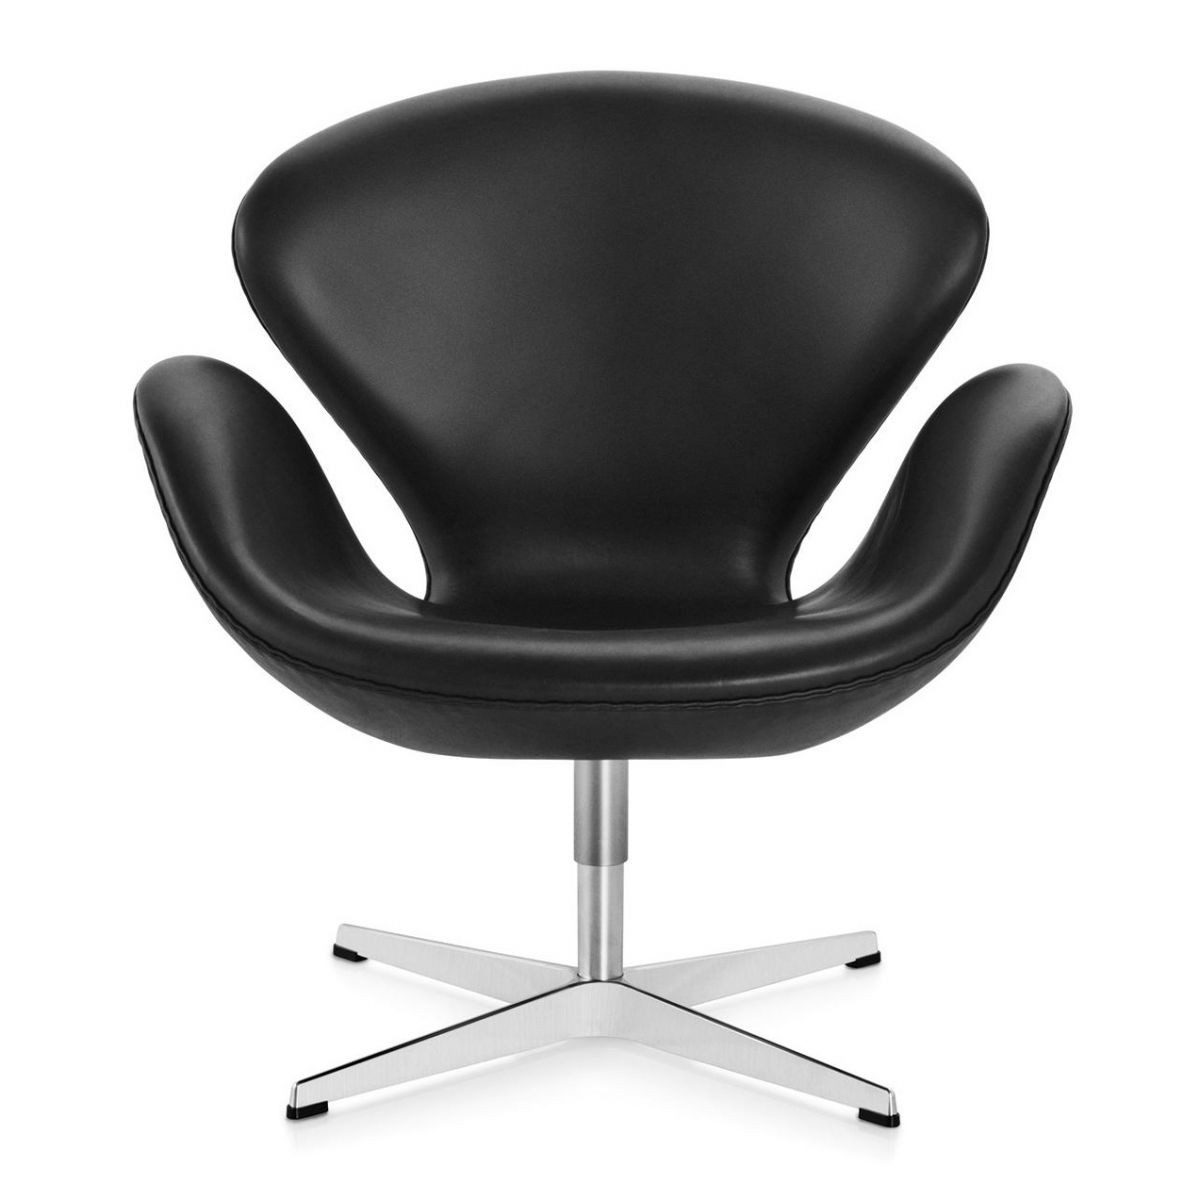 Chair Sessel Fritz Hansen Swan Chair Sessel Leder